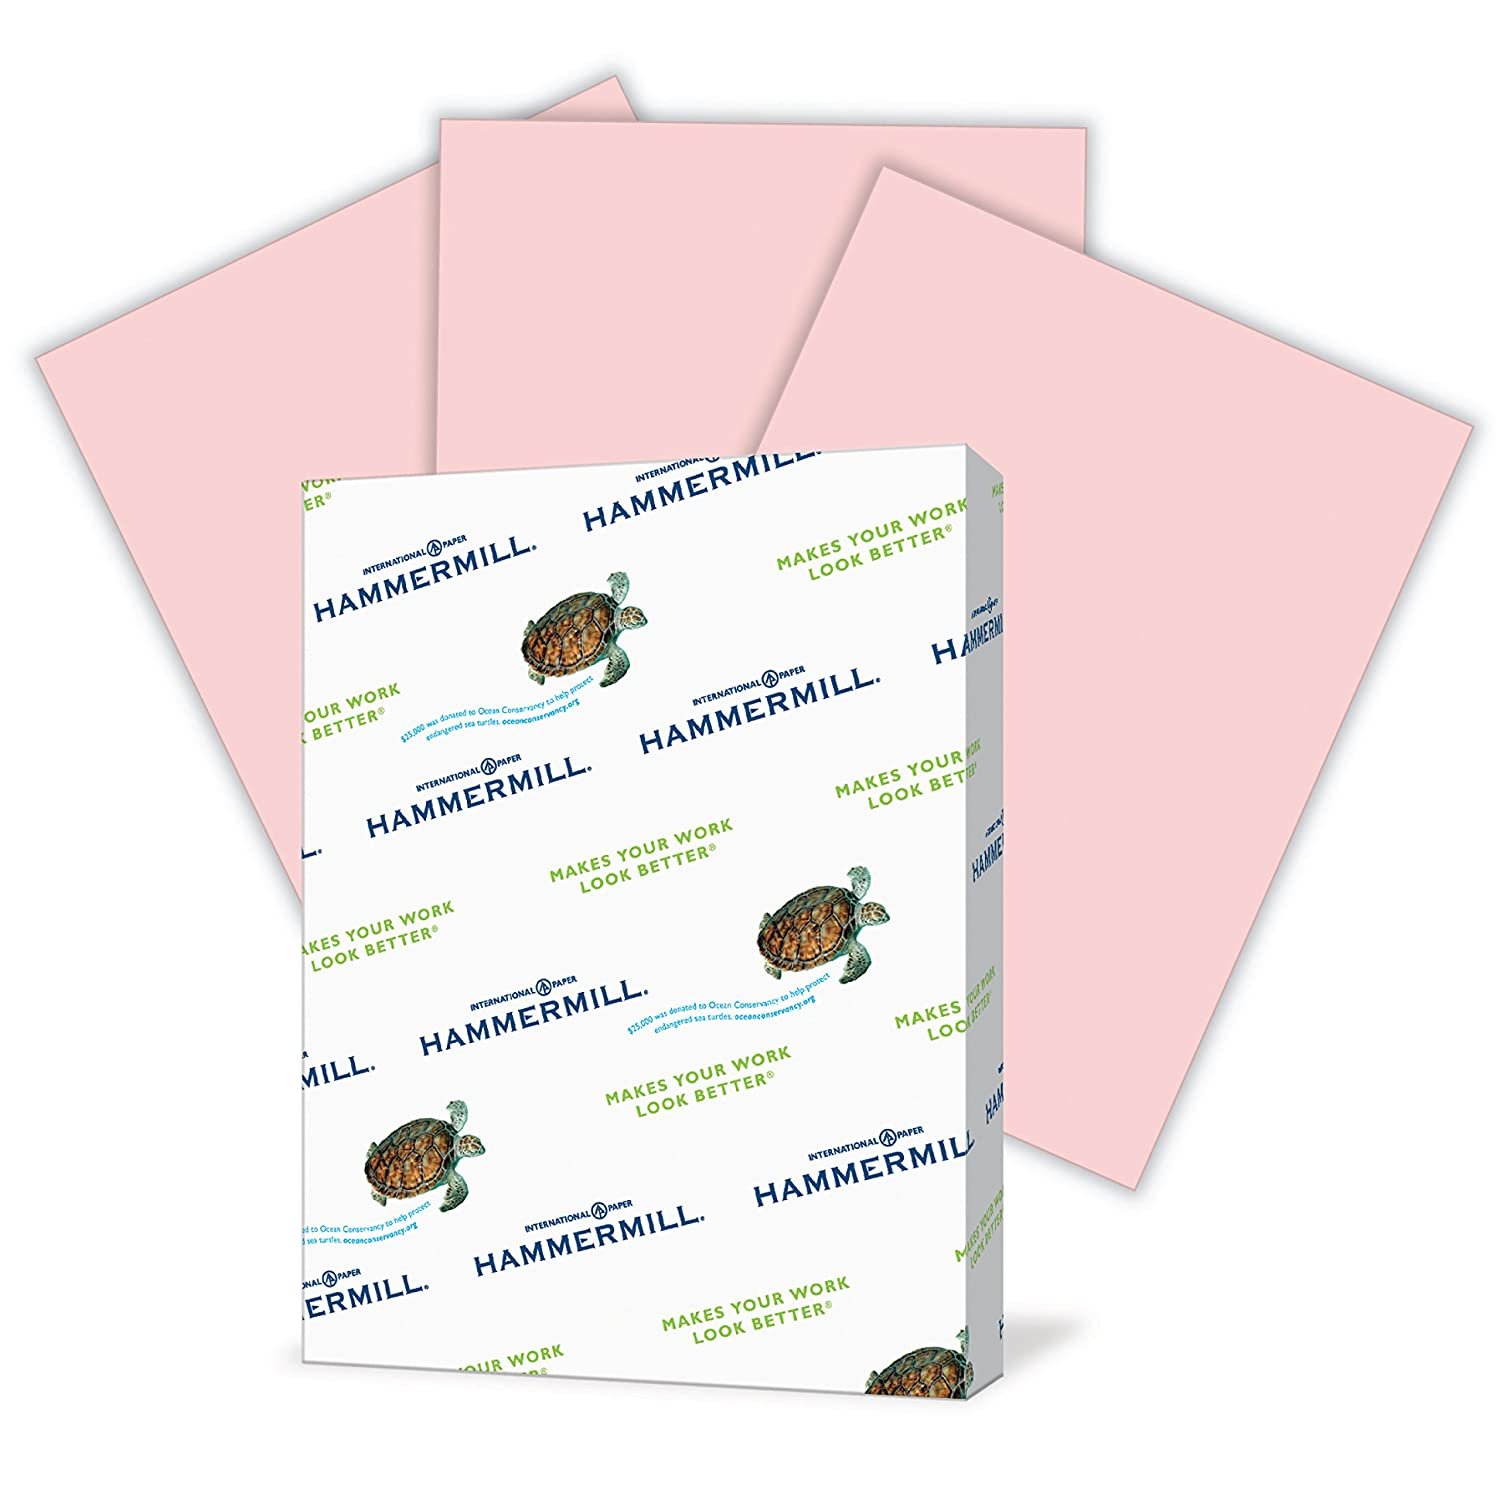 Hammermill Printer Paper, Colors Pink, 20lb, 8.5 x 11, Letter - 1 Pack / 500 Sheets (103382R)